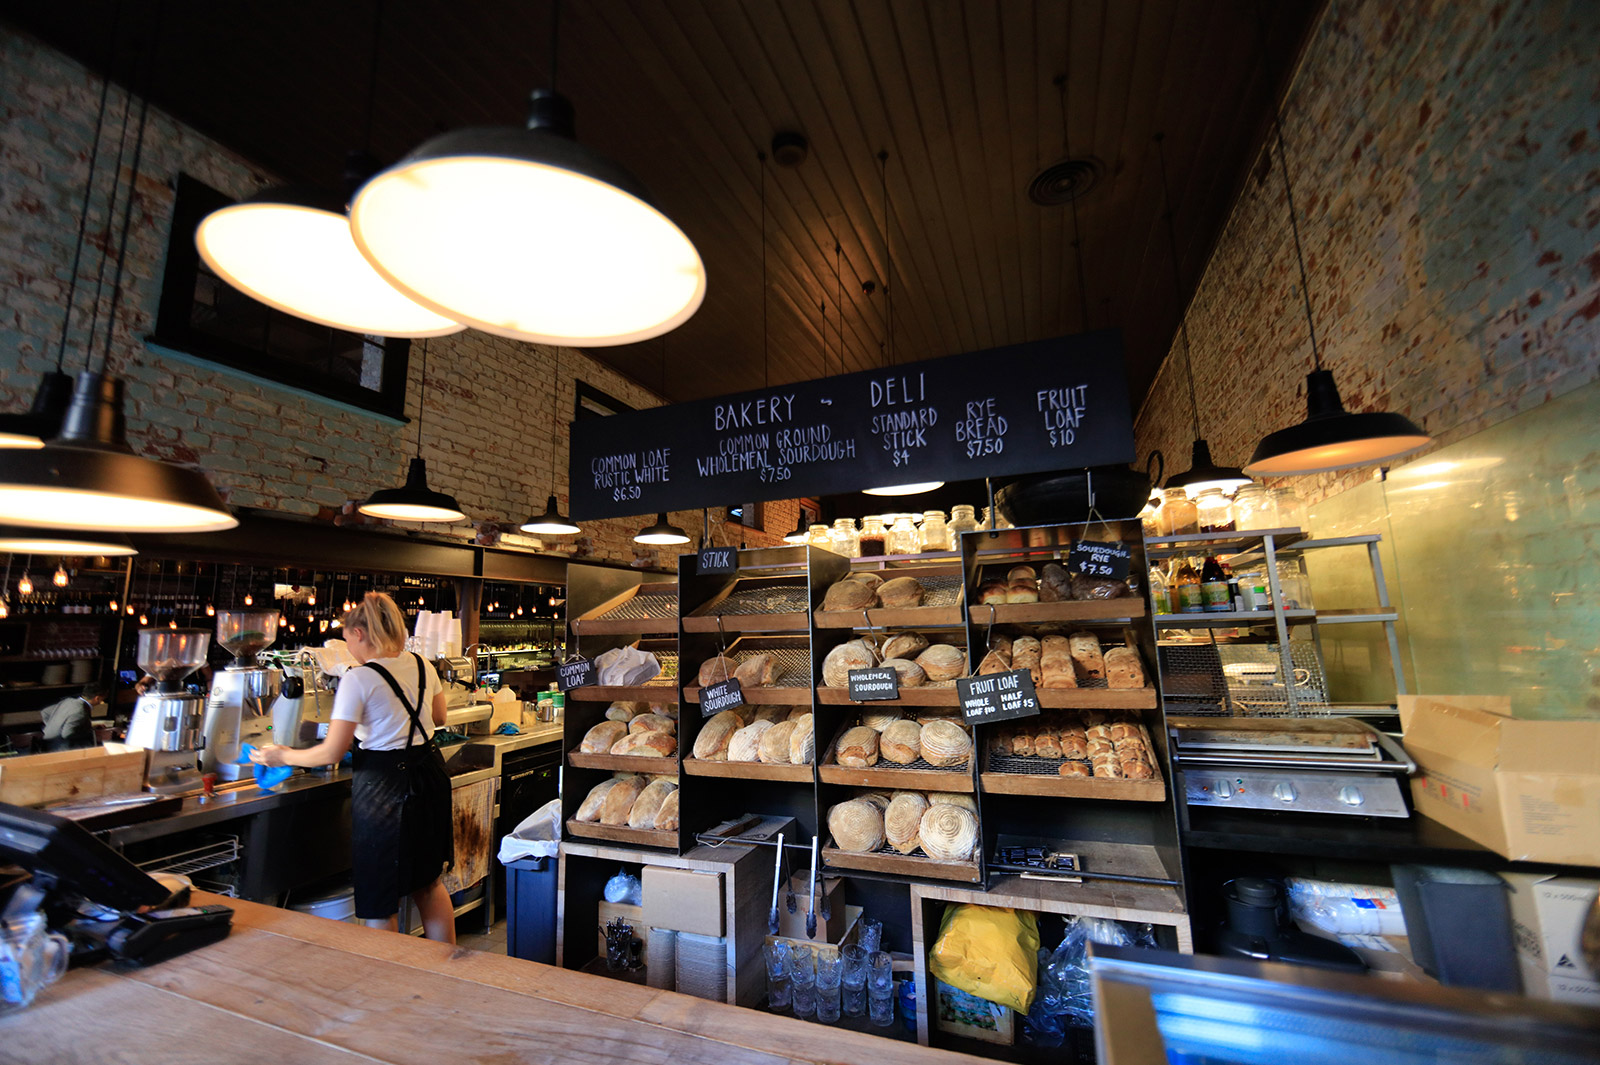 Bakery and Deli